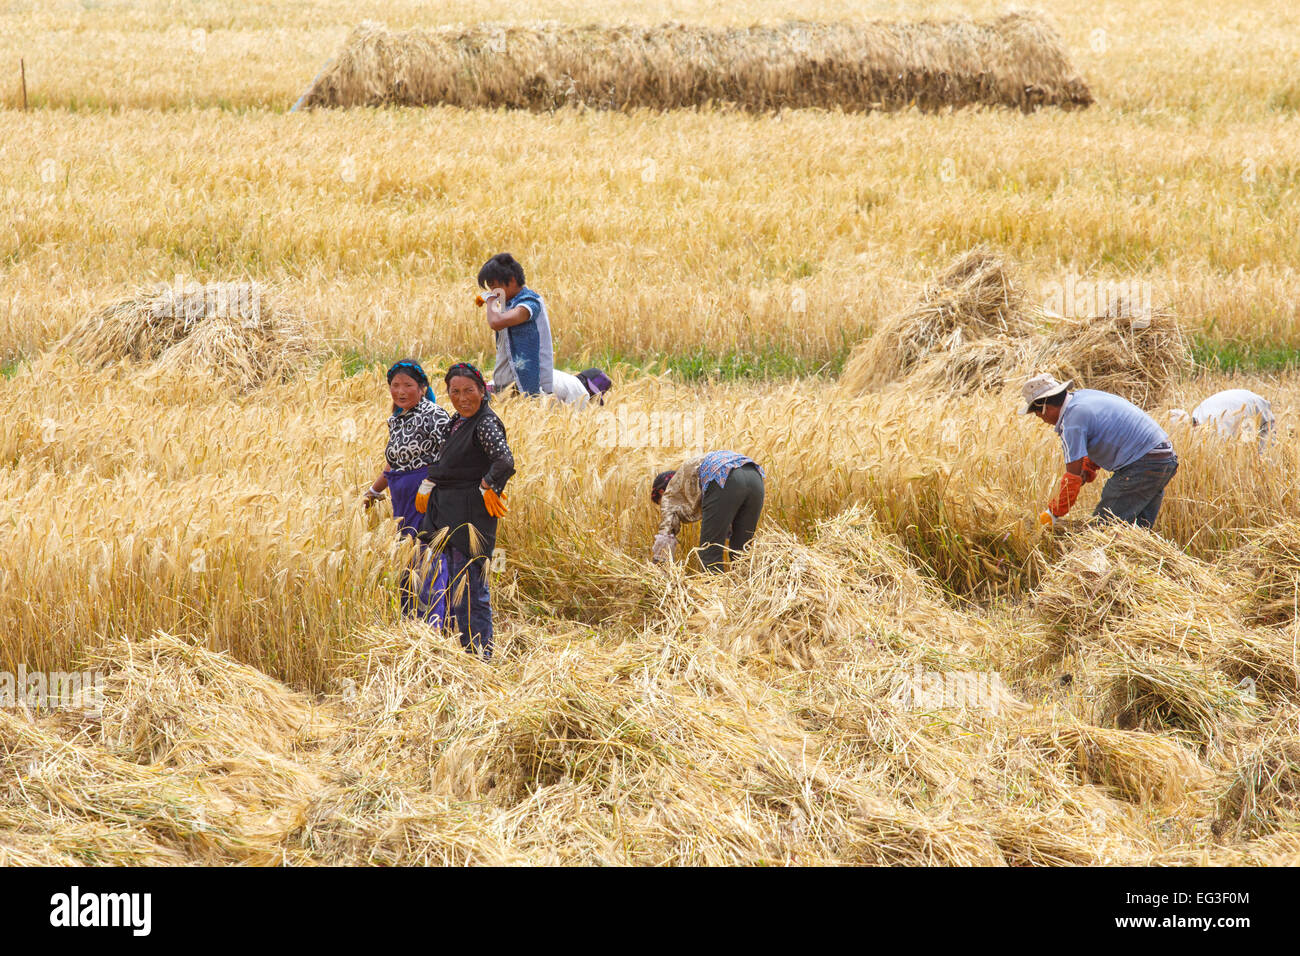 [Editorial Use Only] Farmers in the field harvesting wheat grain by hand near Gyantse, Tibet, China - Stock Image